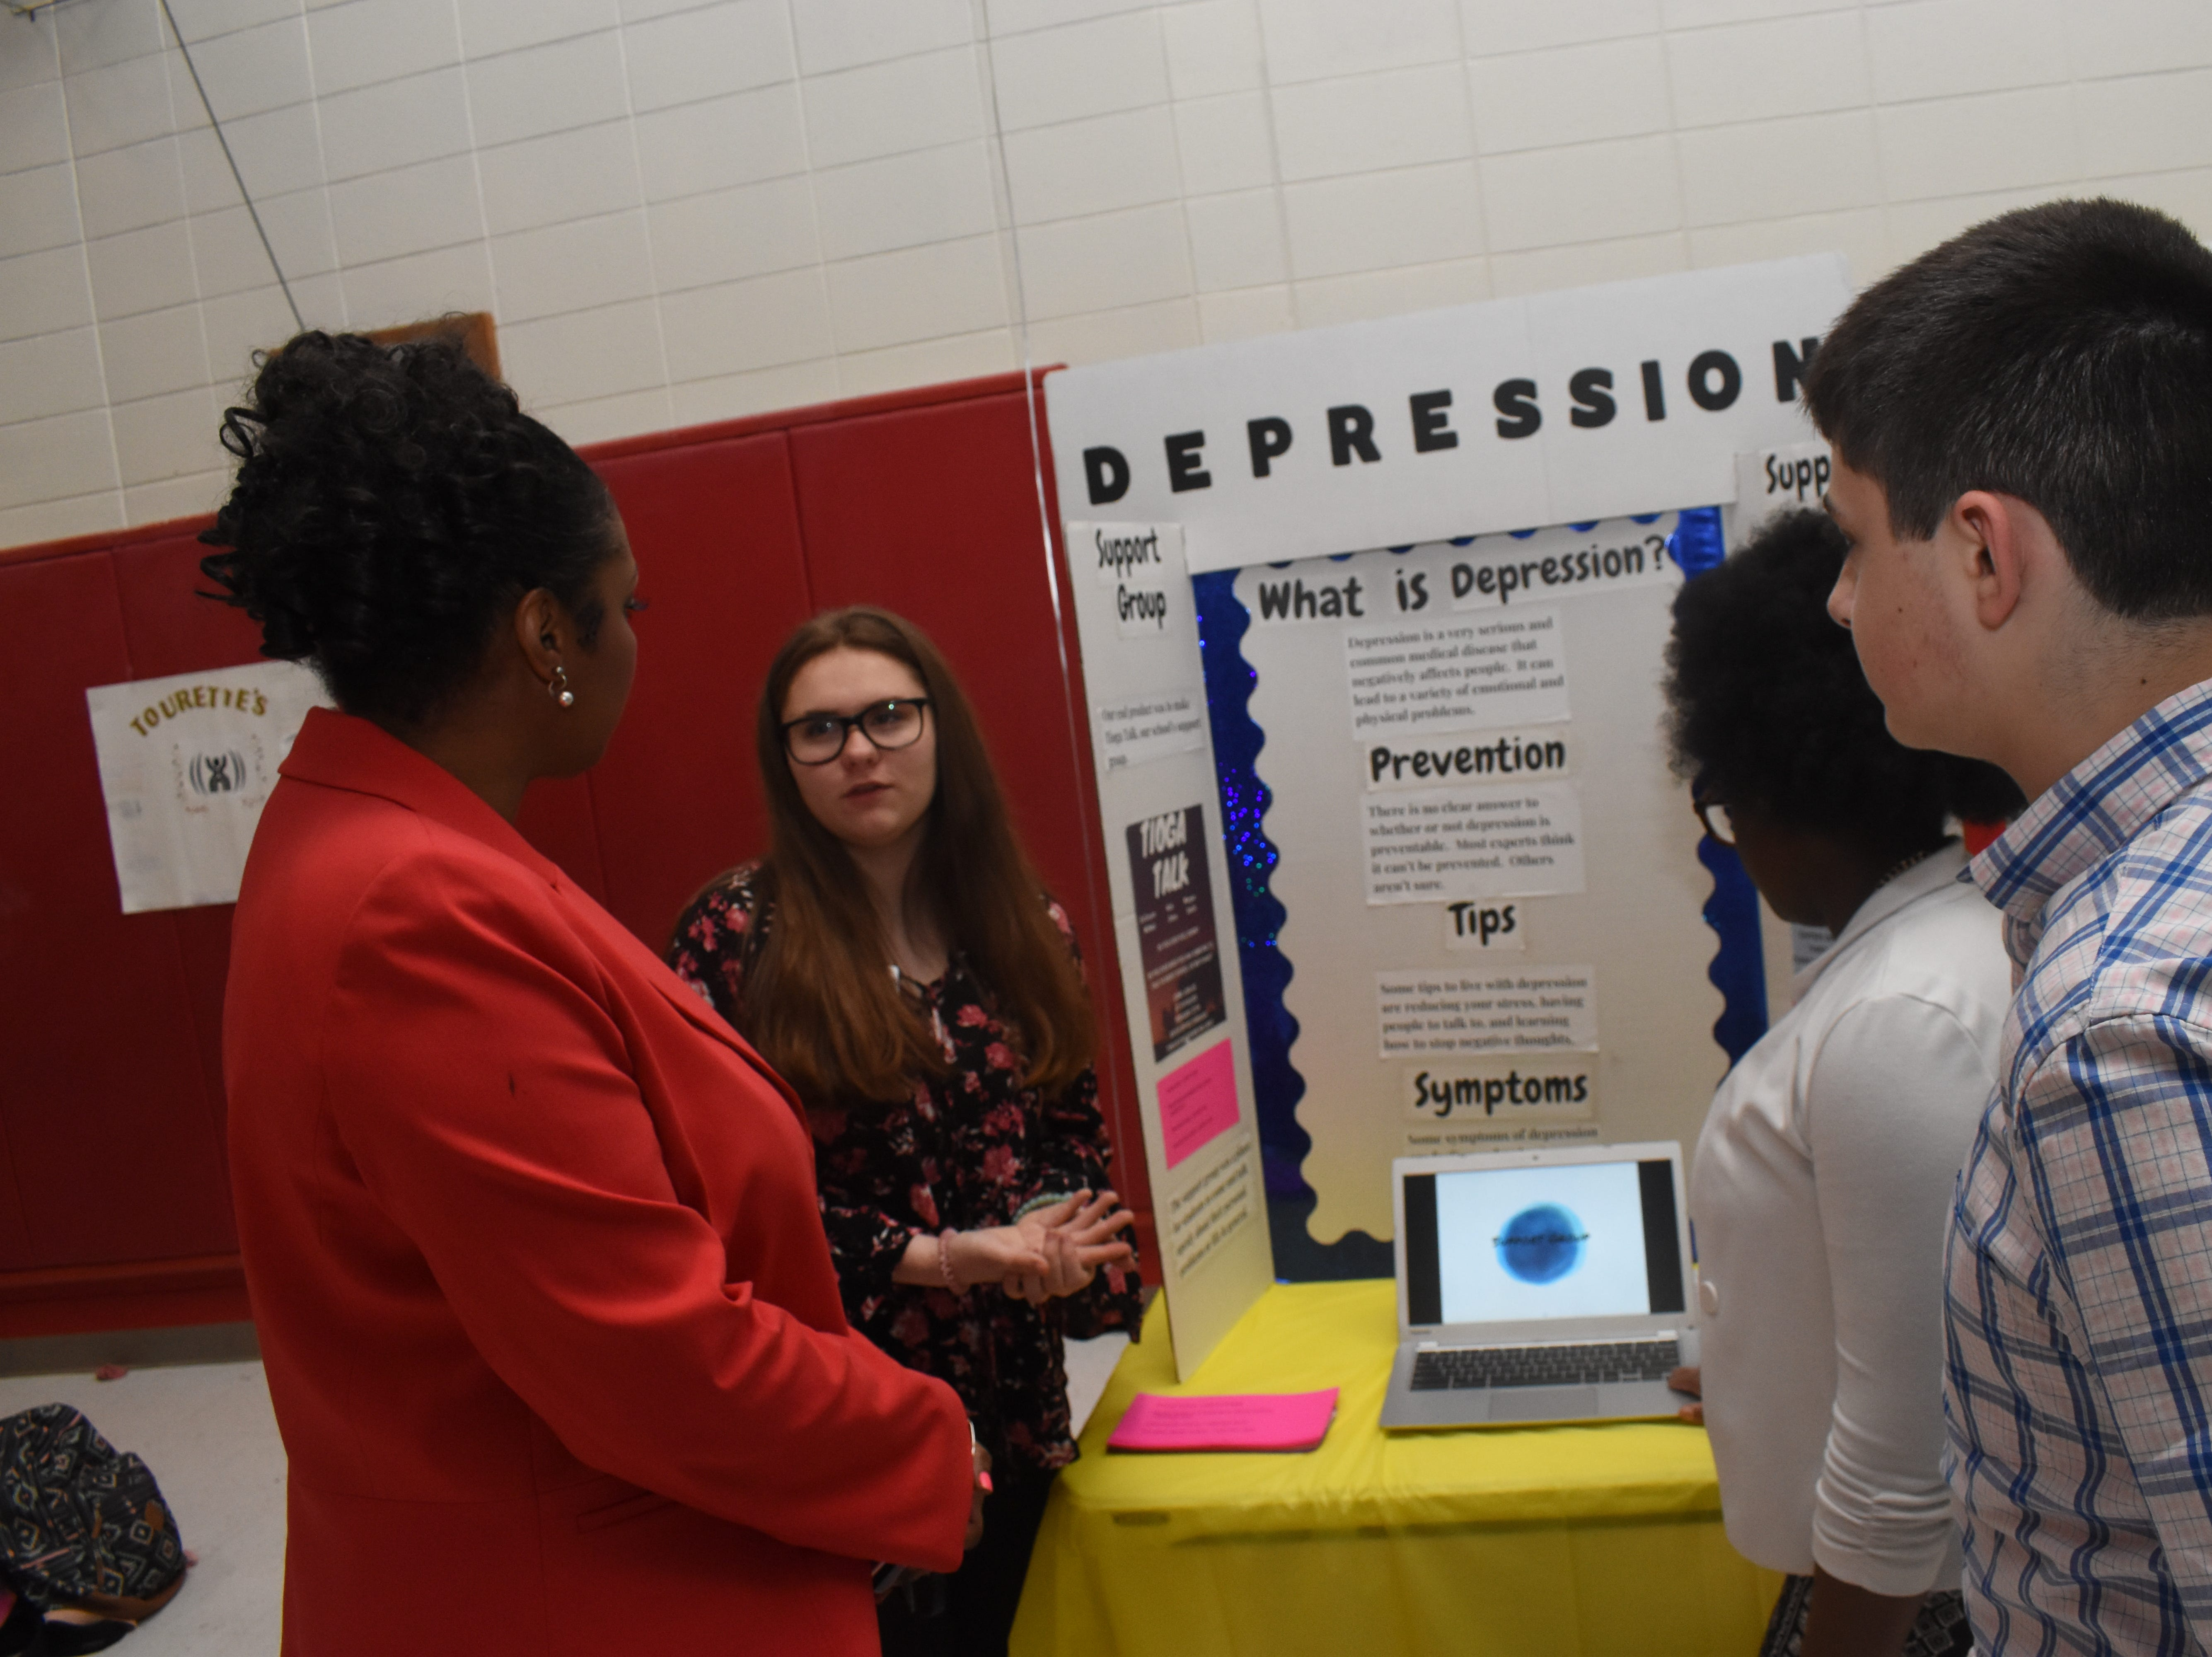 Tioga Junior High School seventh-graders presented projects to community members Thursday, May 9, 2019 in a class called Genius Hour. Students in the class were recommended by teachers. Janice Williams, a teacher at TJHS, said Genius Hour allows students to explore their own passions and encourages creativity in the classroom. The class allows students to choose what they would like to learn.